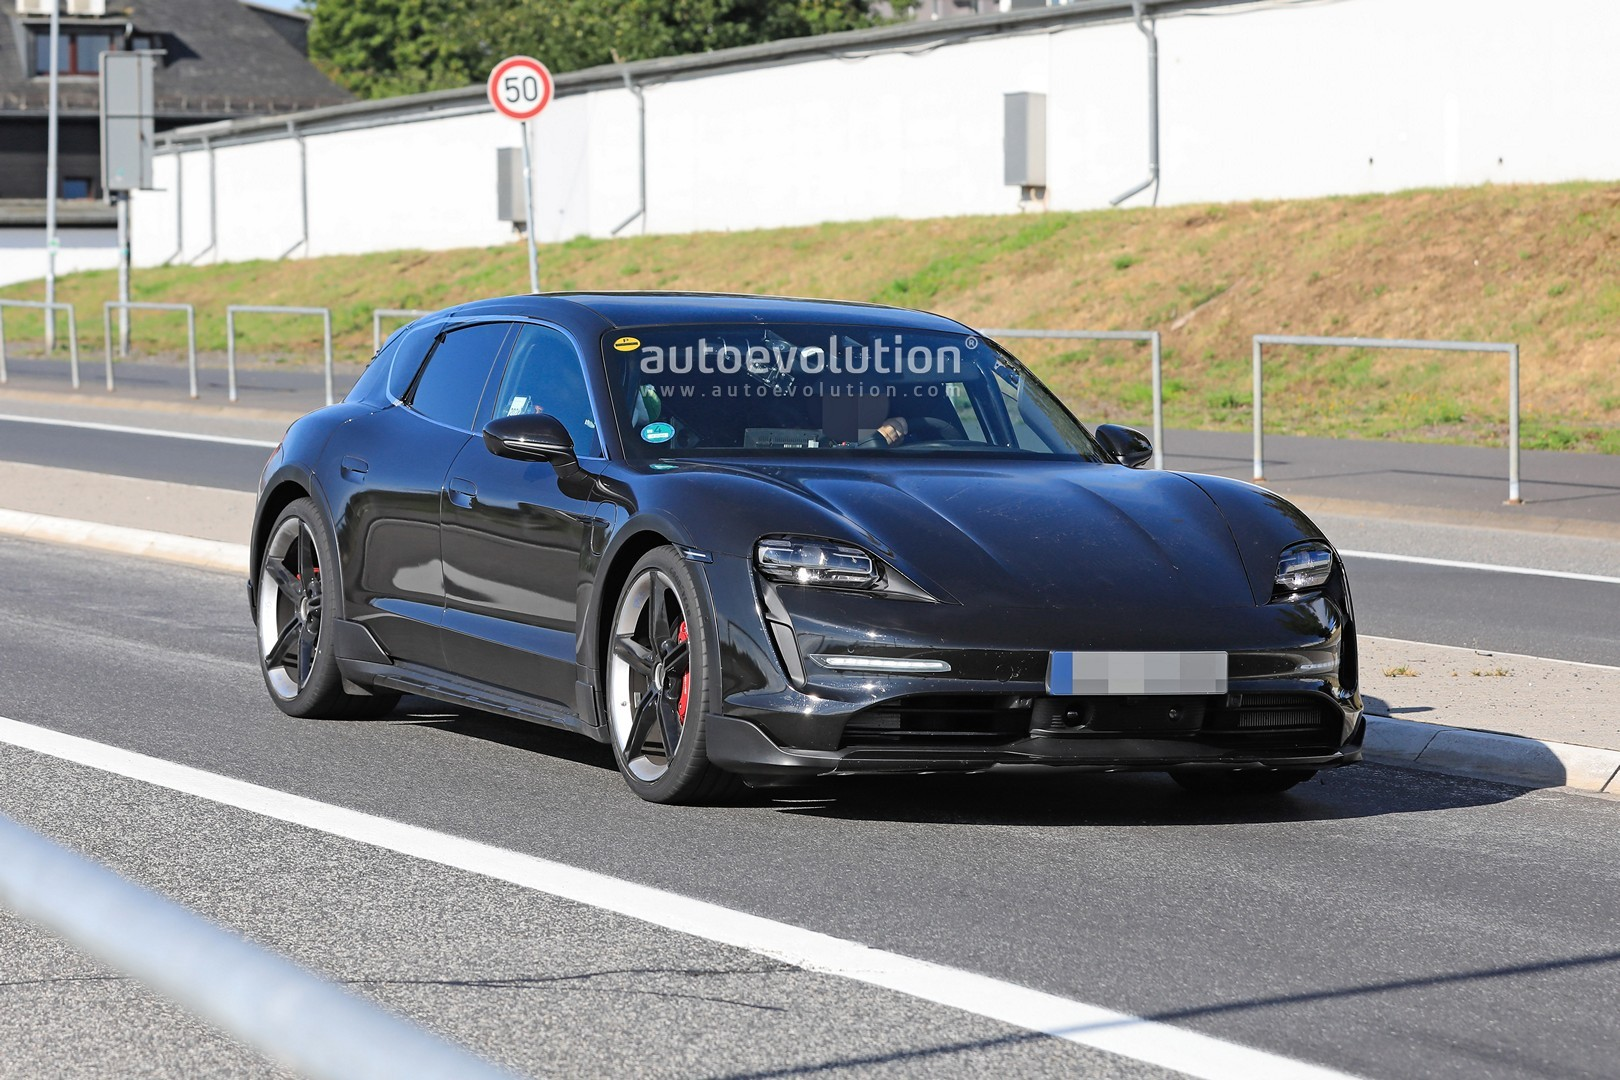 2020 - [Porsche] Taycan Sport Turismo - Page 2 Porsche-taycan-cross-turismo-spied-testing-hard-at-the-nurburgring_9